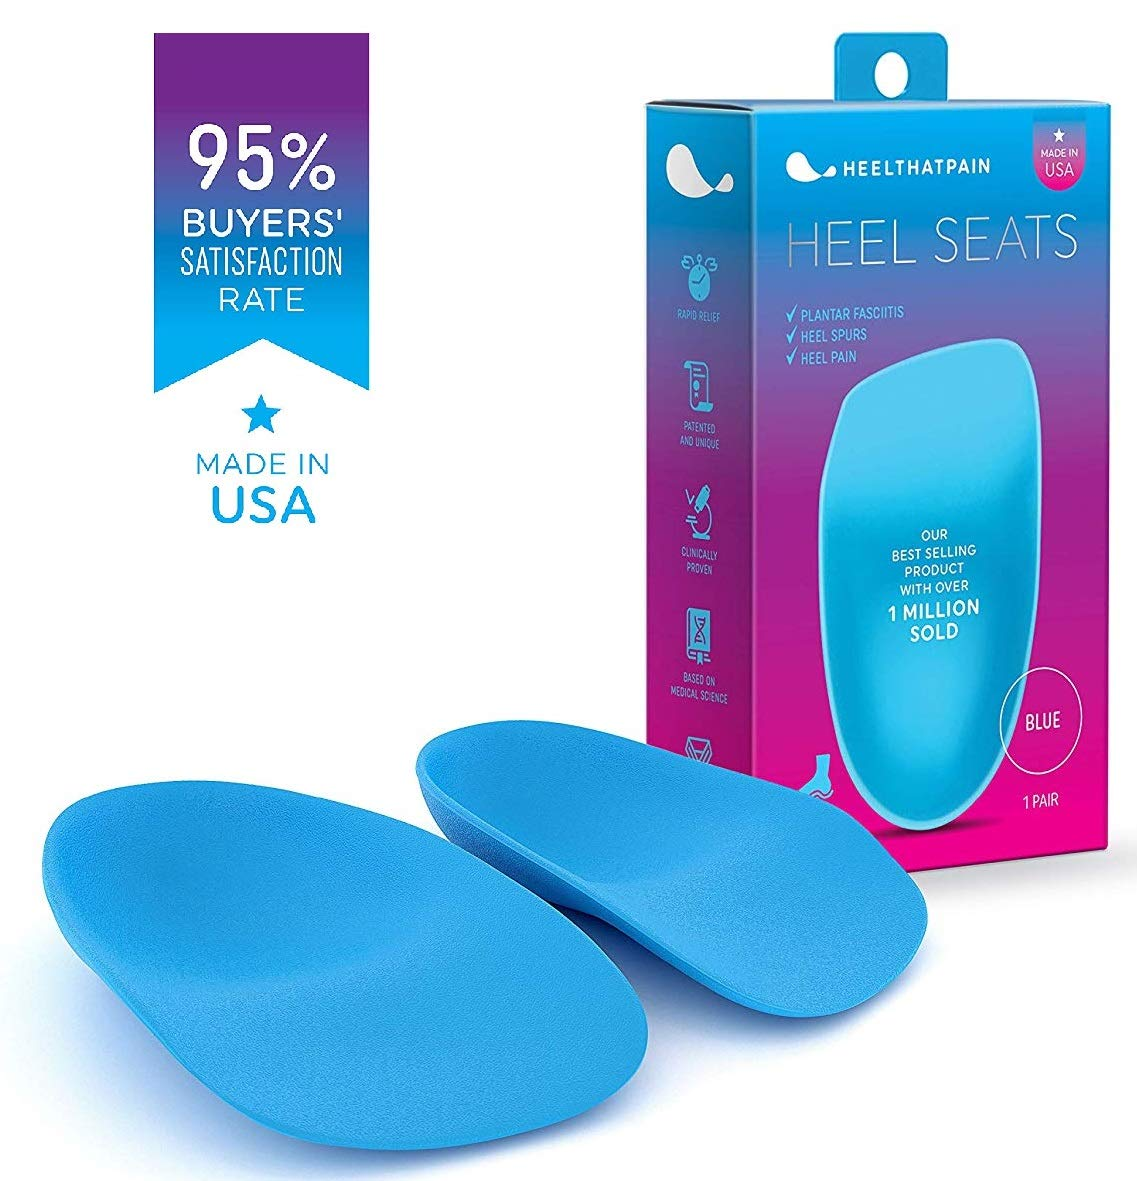 Heel That Pain Heel Seats Foot Orthotic Inserts - Heel Cups Cushions Insoles for Plantar Fasciitis, Heel Spurs, and Heel Pain, Blue, Large (Women's 10.5-13, Men's 8.5-12), 2 Pack